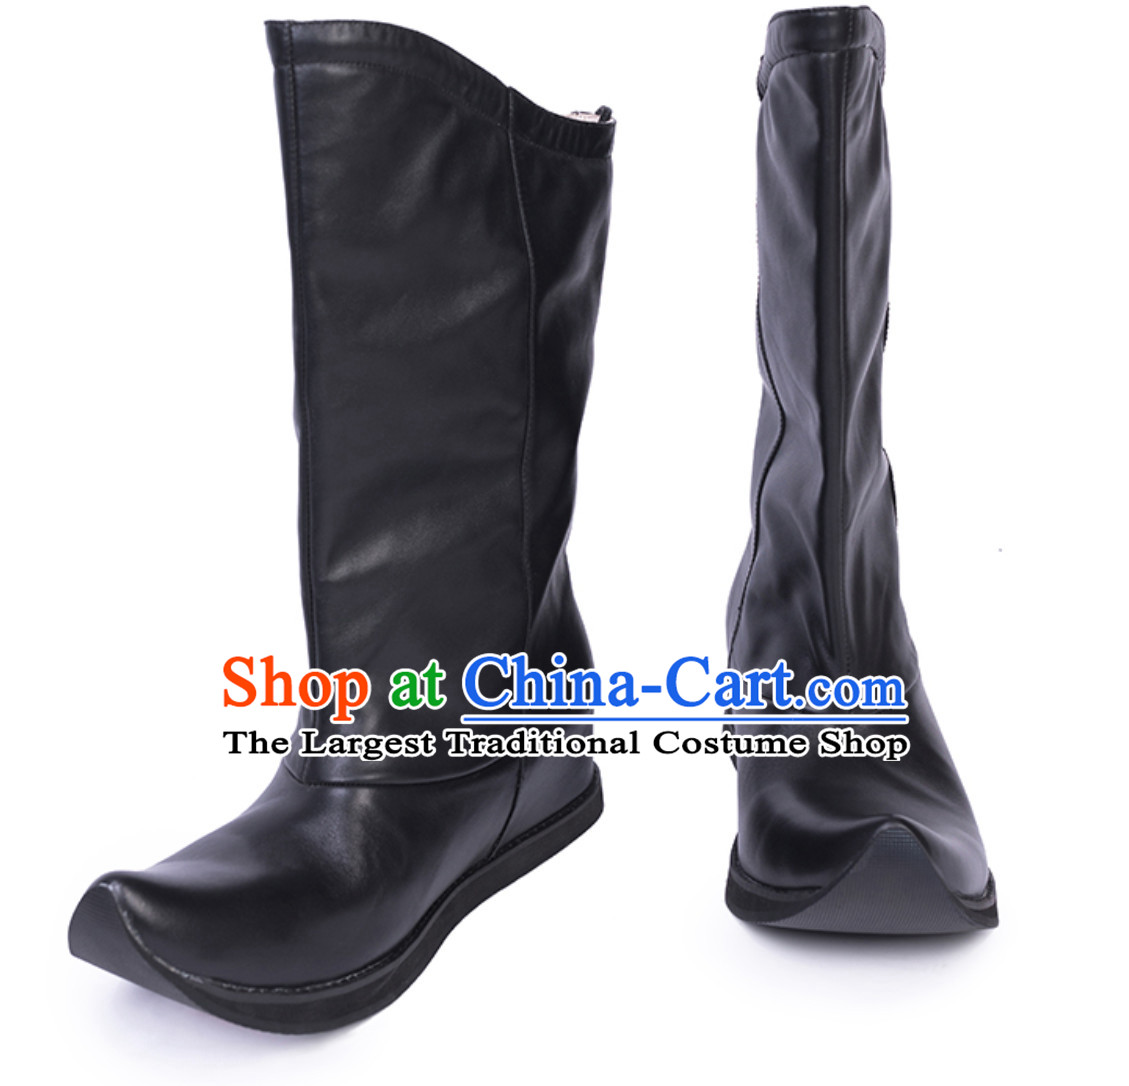 Ancient Chinese Style Long Black Leather Boots